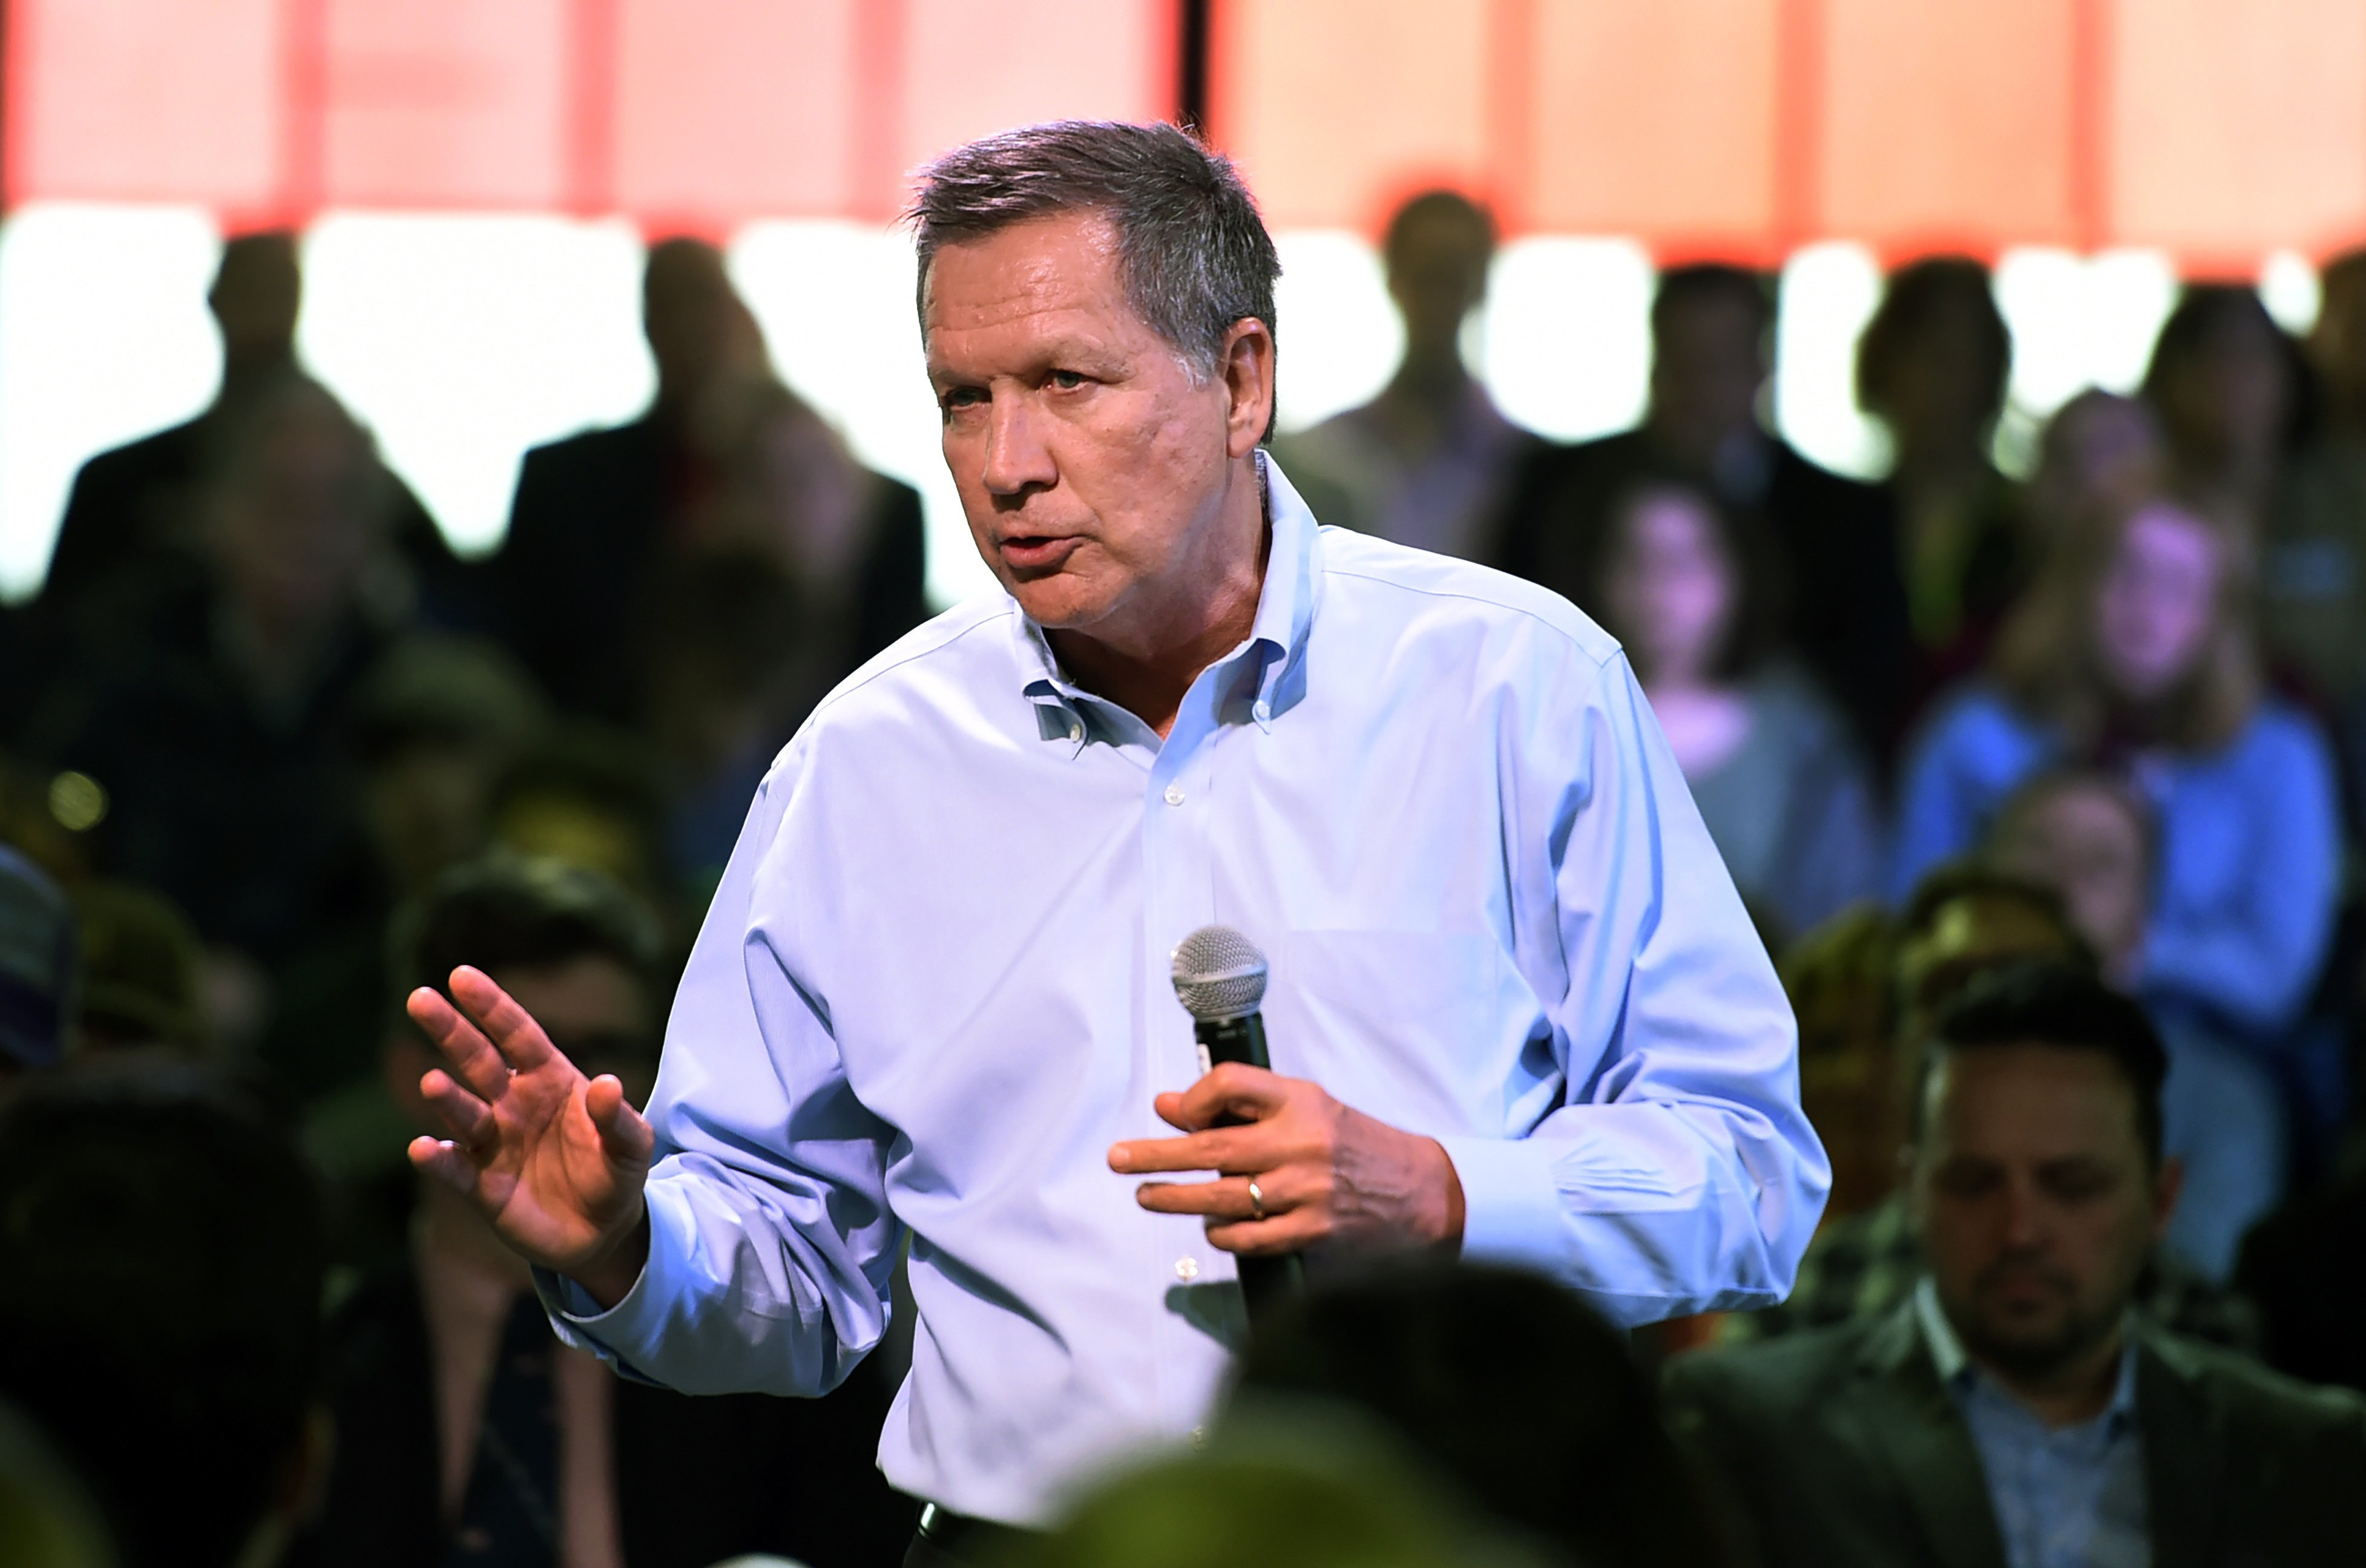 On Sunday, Republican Ohio Governor John Kasich, a man with a mixed record on guns for decades (he voted for the assault weapons ban in 1994, earning him a temporary F from the NRA, but rehabilitated himself by signing into law a significant amount of pro-gun legislation in Ohio), suggested a complete ban on AR-15s …